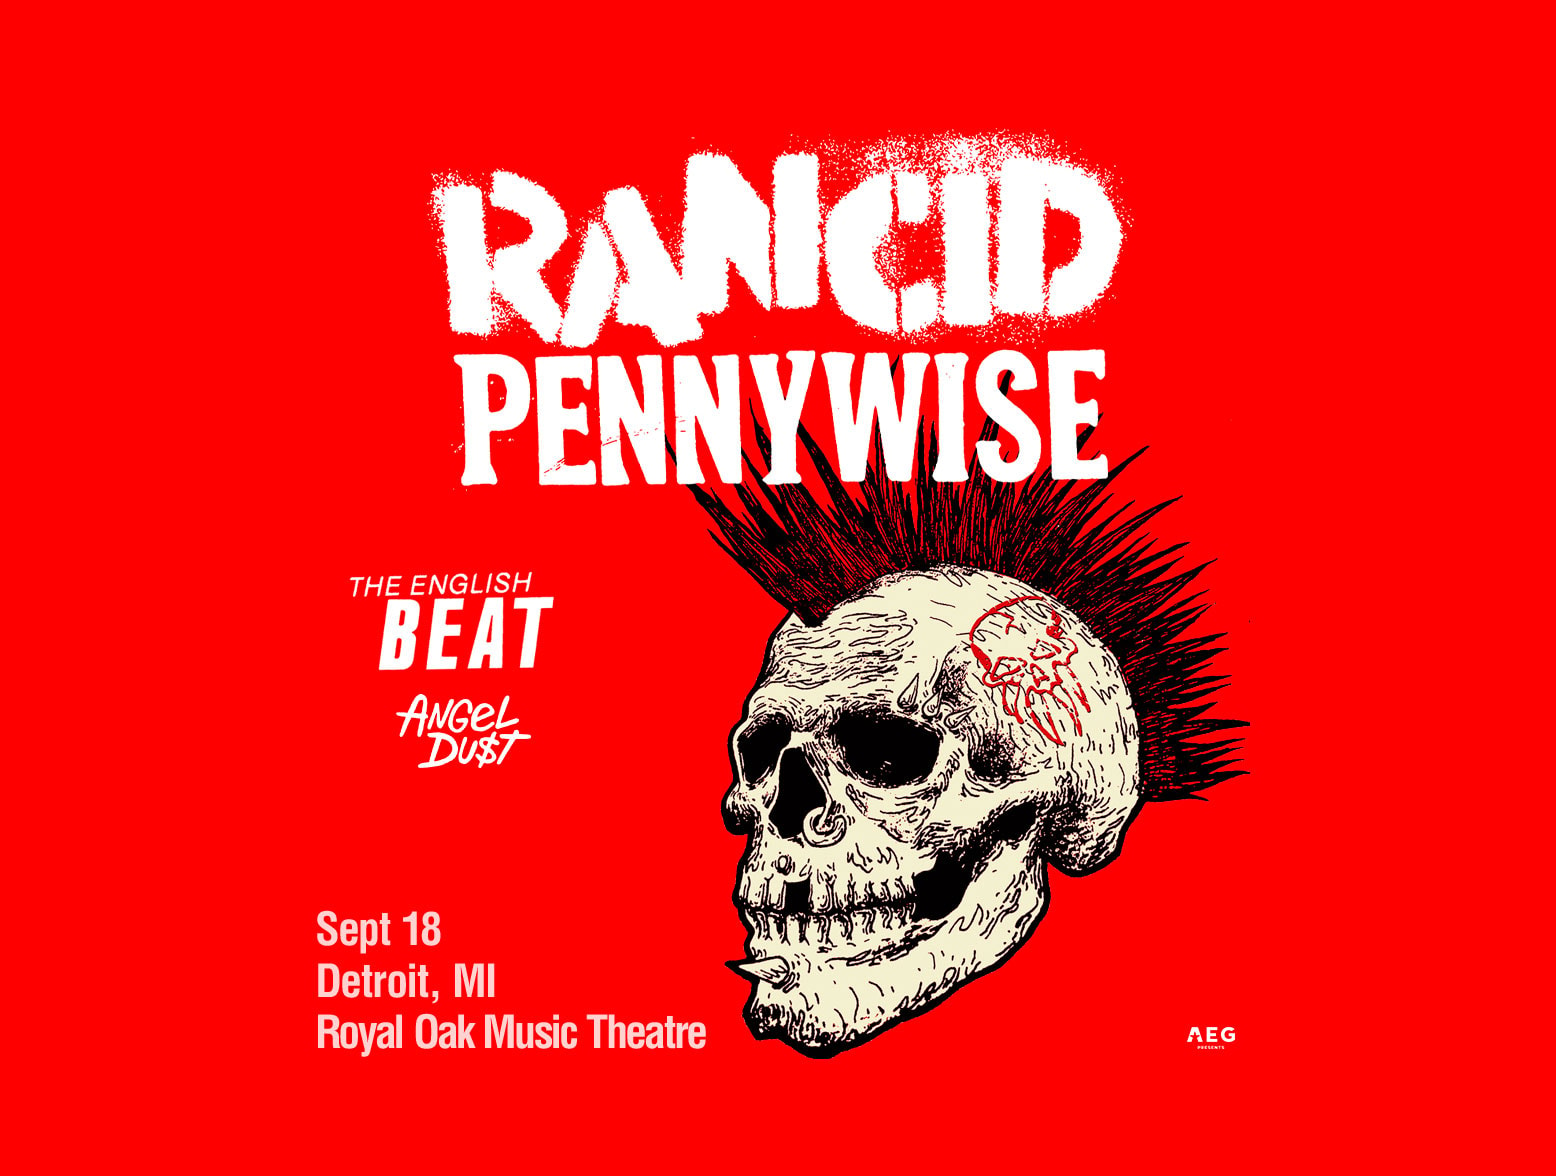 Rancid Wsg Pennywise And More Now At Royal Oak Music Theatre